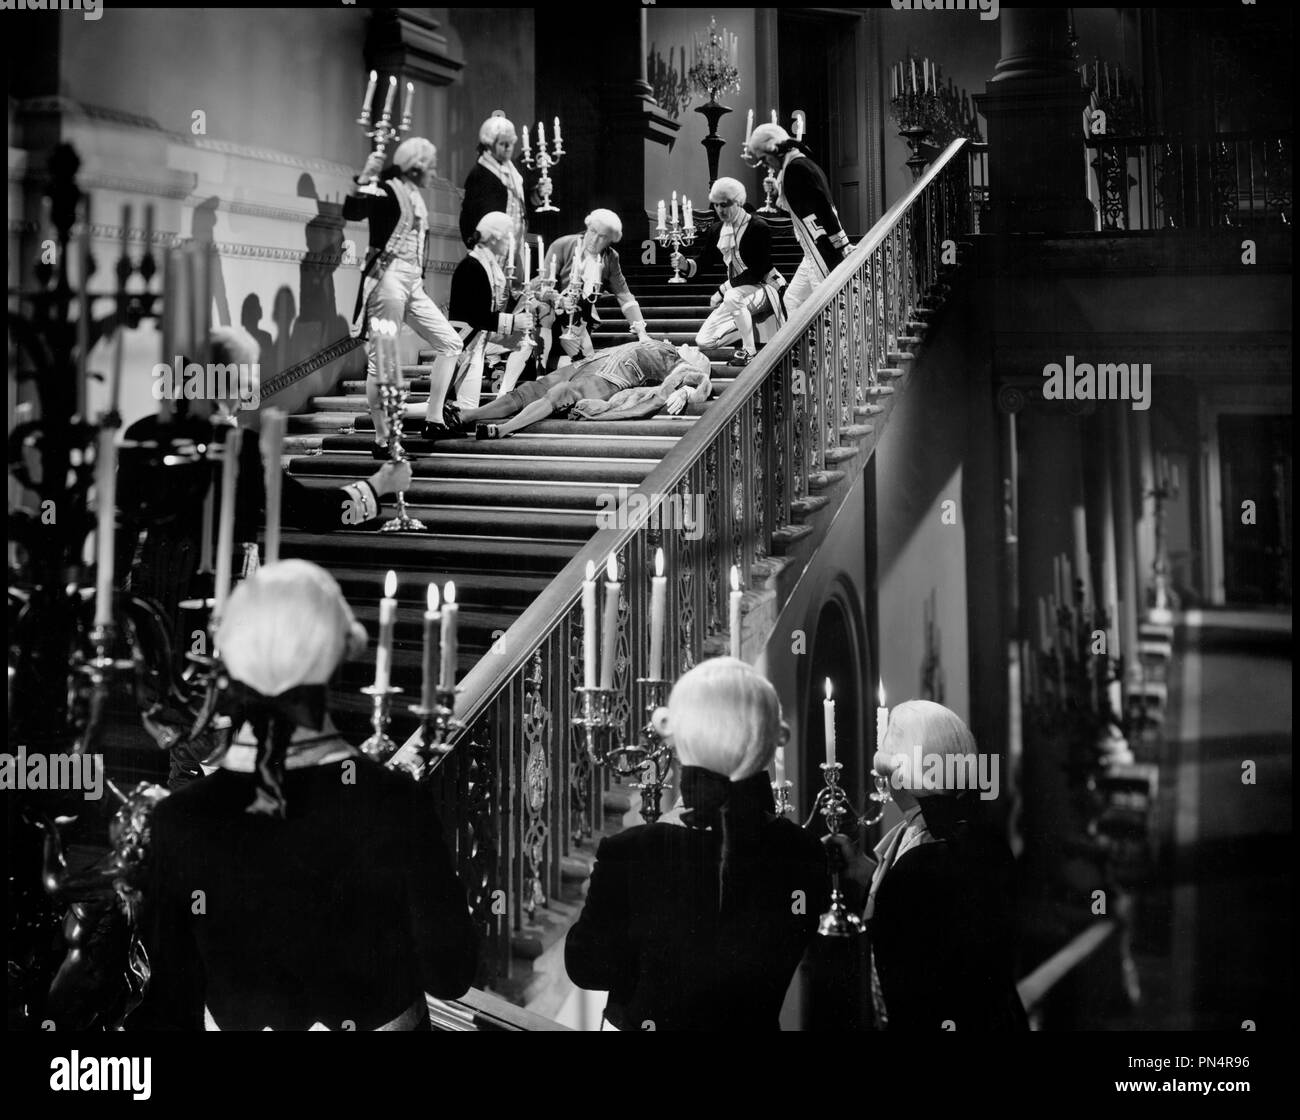 Prod DB © Paramount Pictures / DR LA DUCHESSE DES BAS-FONDS (KITTY) de Mitchell Leisen 1945 USA 18eme siecle, XVIIIeme, chandelier, bougie, accident, chute, escalier, serviteurs, valets, perruque d'apres le roman de Rosamond Marshall Stock Photo